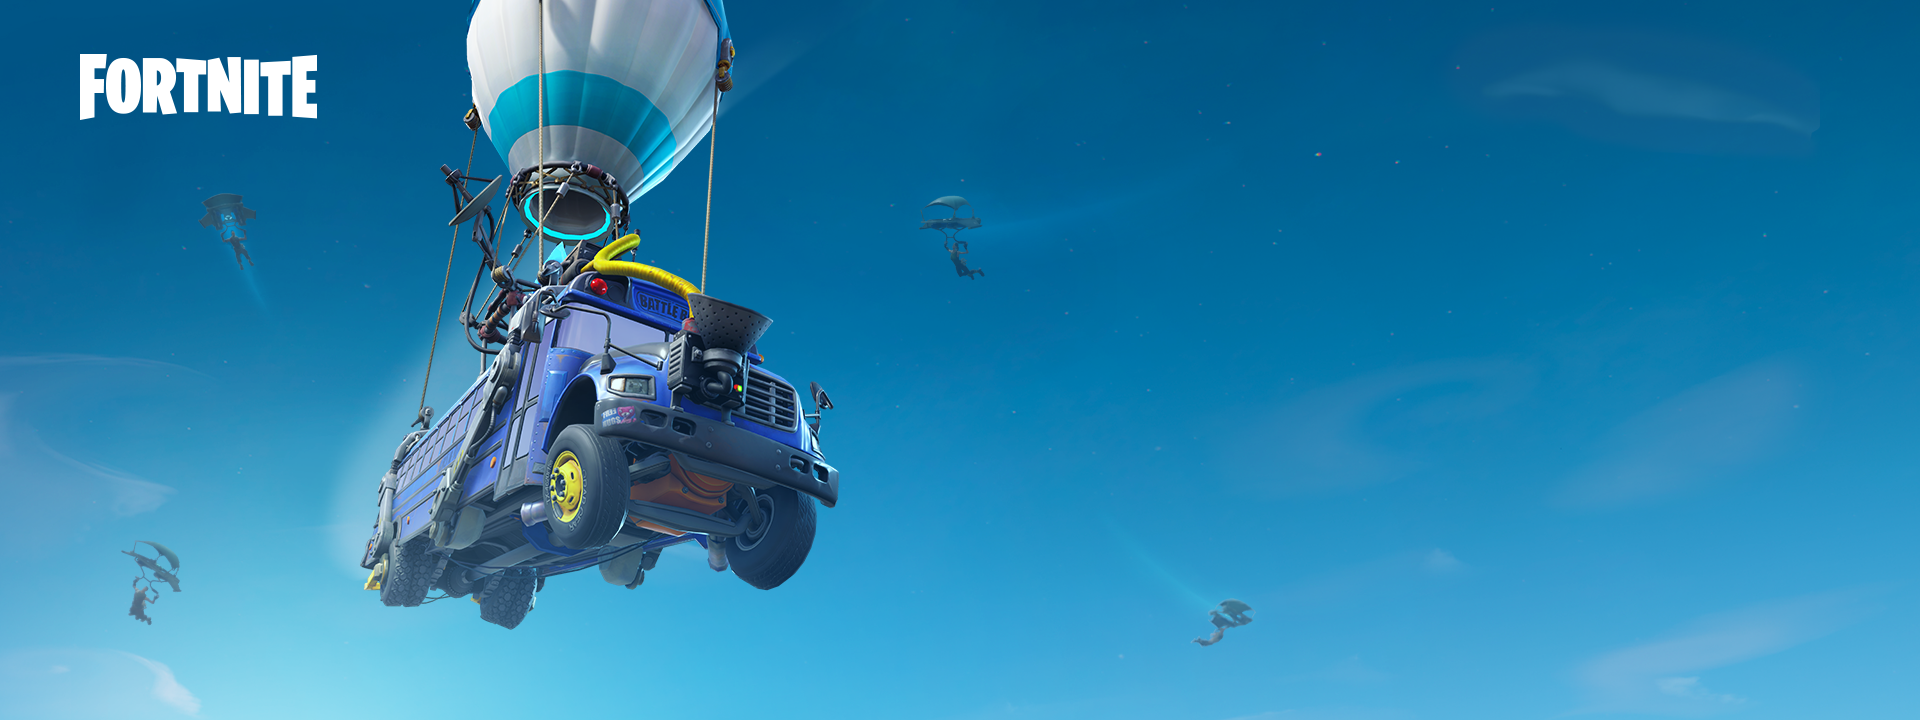 Fortnite Battle Bus flying through the air